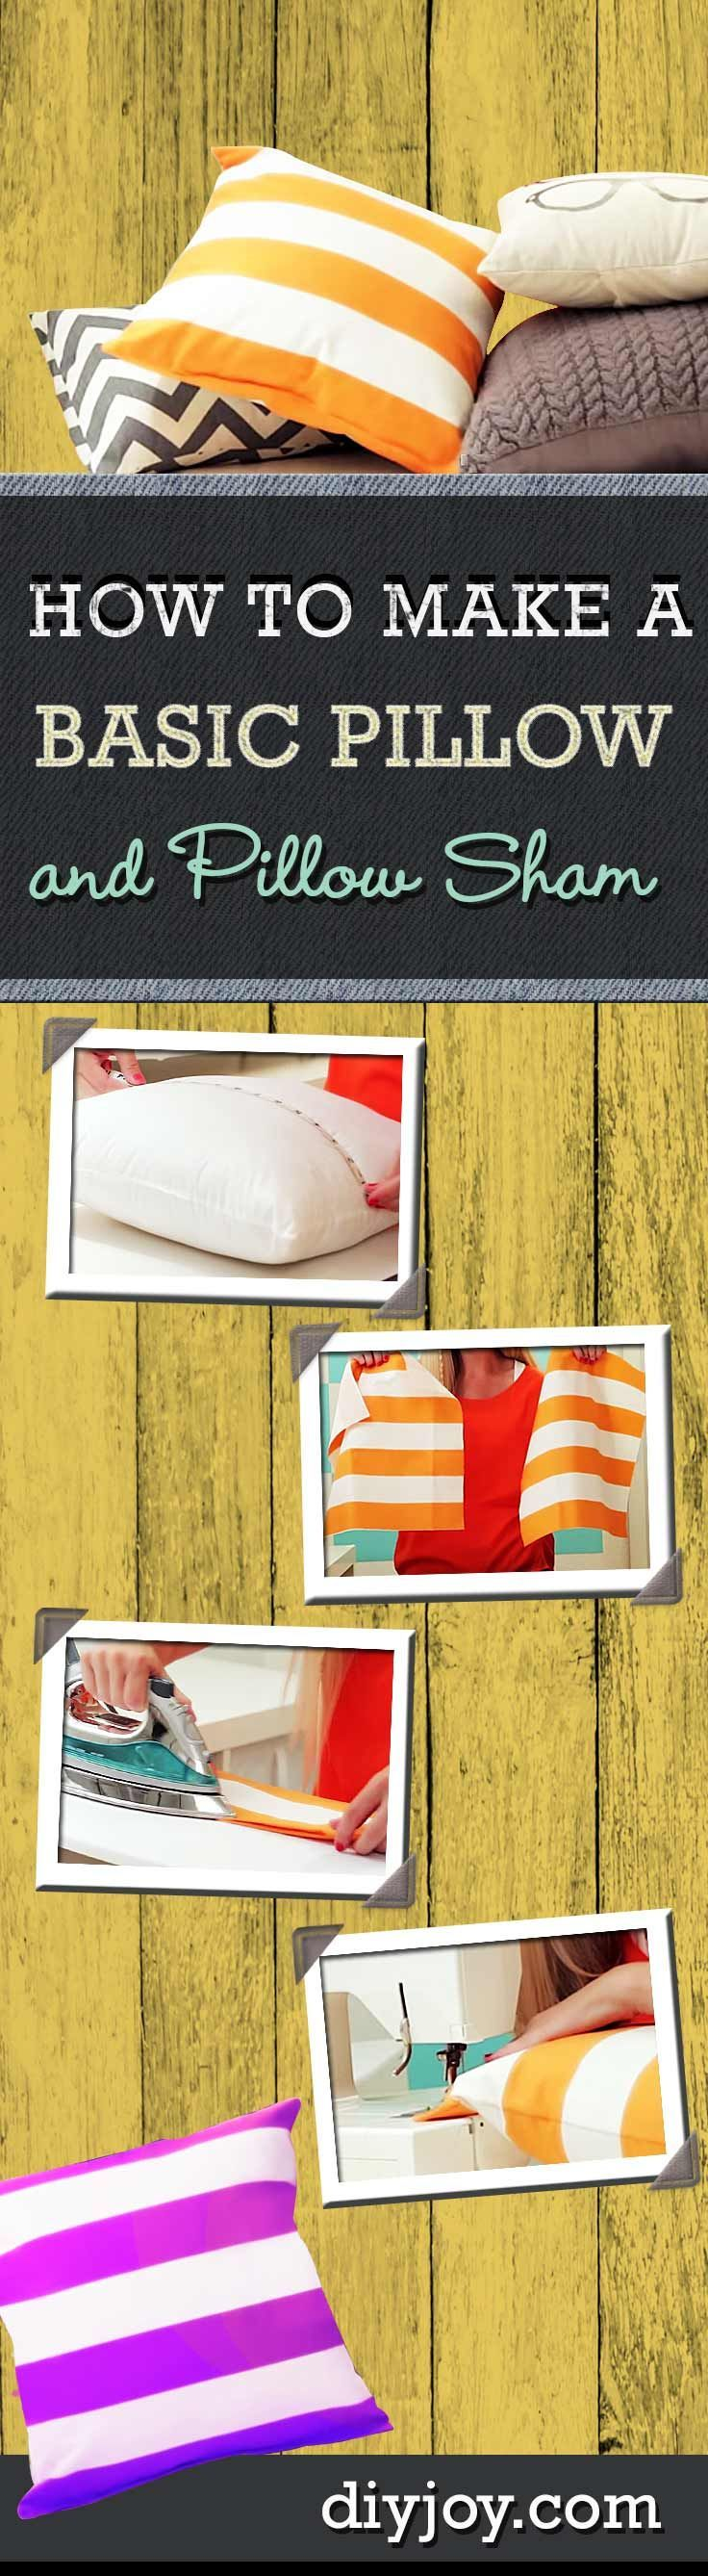 How to Make A Pillow Sham - Sewing Tutorials for Beginners and Easy DIY Projects at diyjoy.com/...